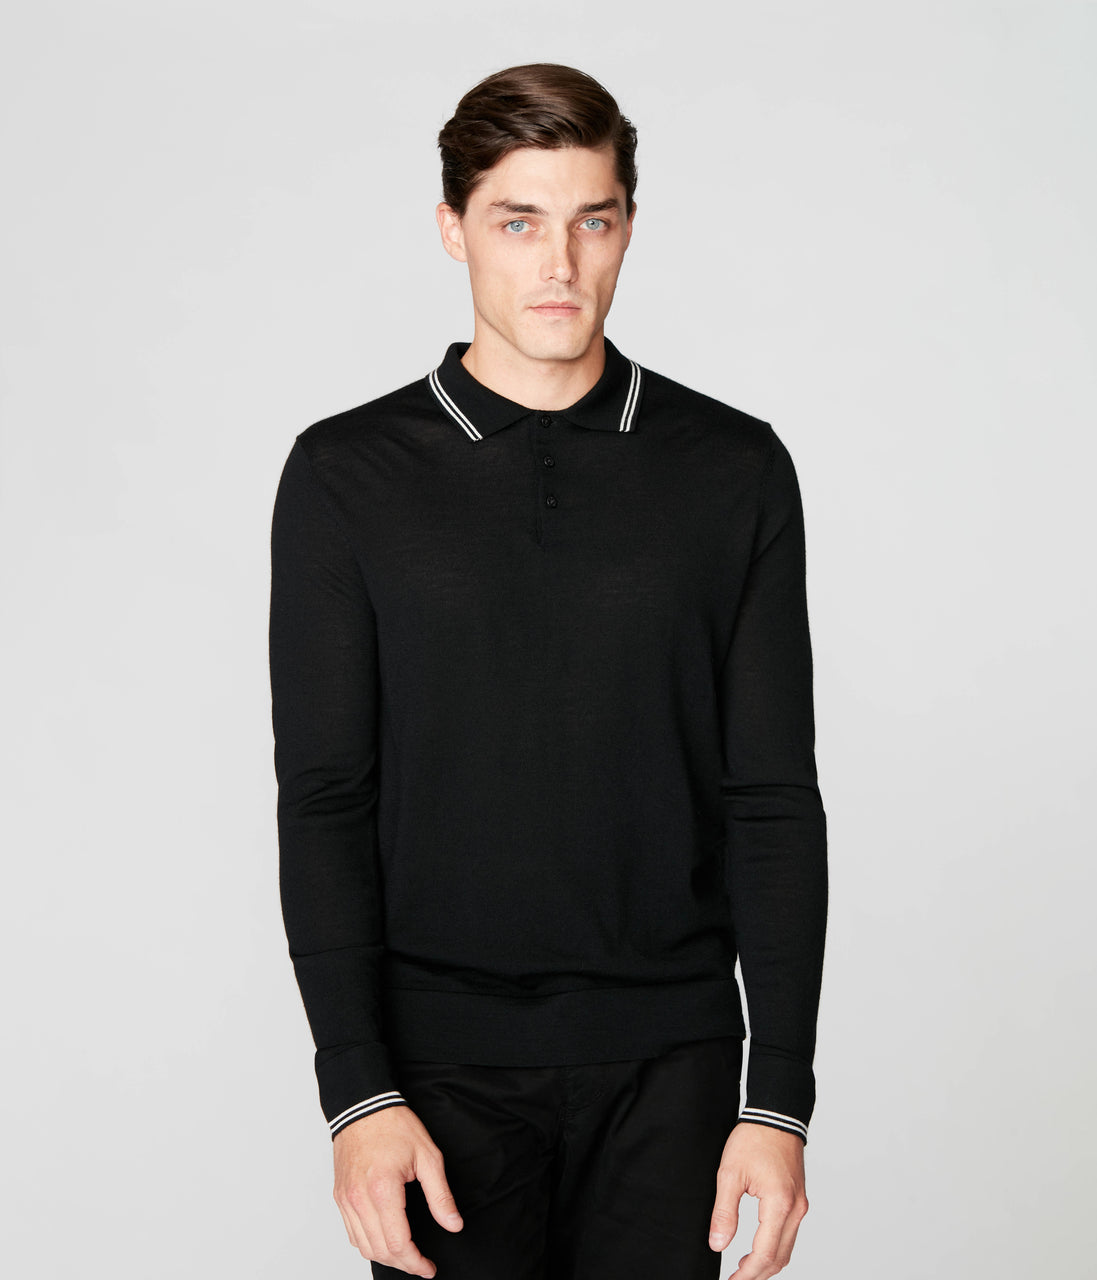 Match Point Polo in Merino Wool - Black - Good Man Brand - Match Point Polo in Merino Wool - Black